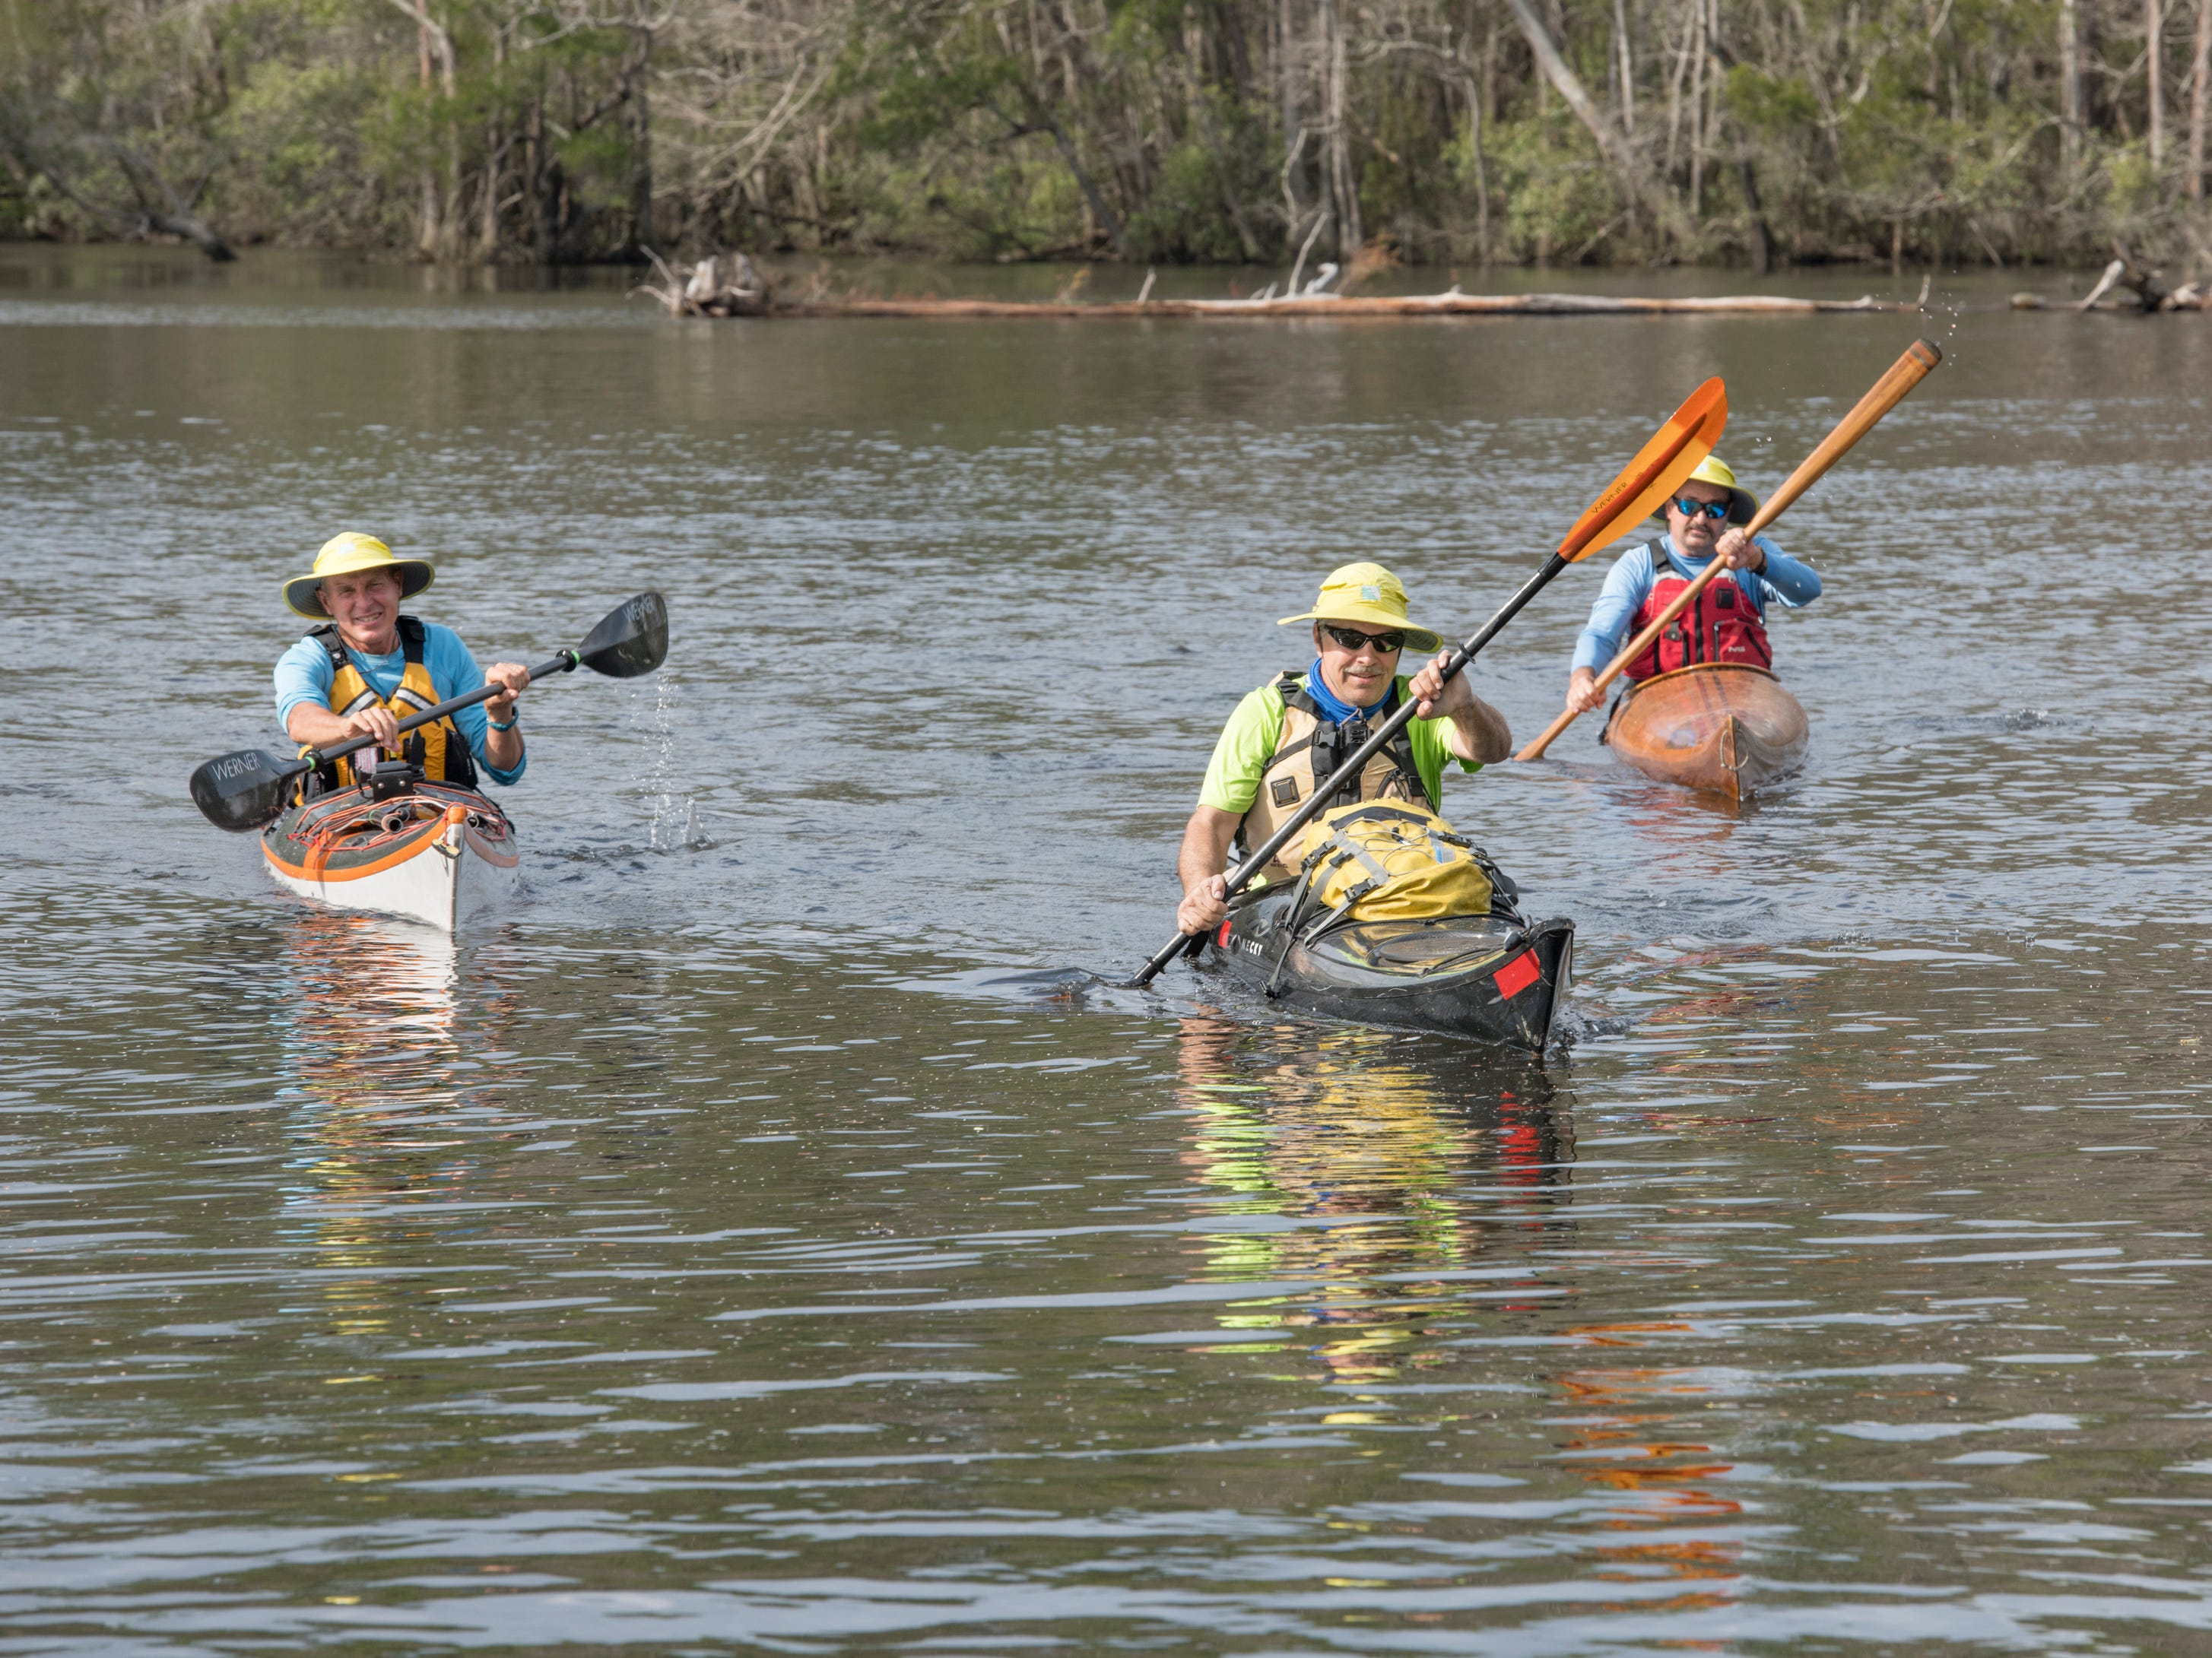 Paul Gelderblom, of Charlevoix, Michigan, from left, Doug Alderson, of Tallahassee, and Guerry Bradley, of St. Augustine, kayak on the Perdido River near the Wilson Robertson Boat Ramp in Pensacola on Monday, March 11, 2019.  Paddle Florida is hosting 60 paddlers on a 5-day, 60-mile journey from Otto Hill to Perdido Pass.  Florida is currently working with Alabama to establish a paddling trail on the Perdido River.